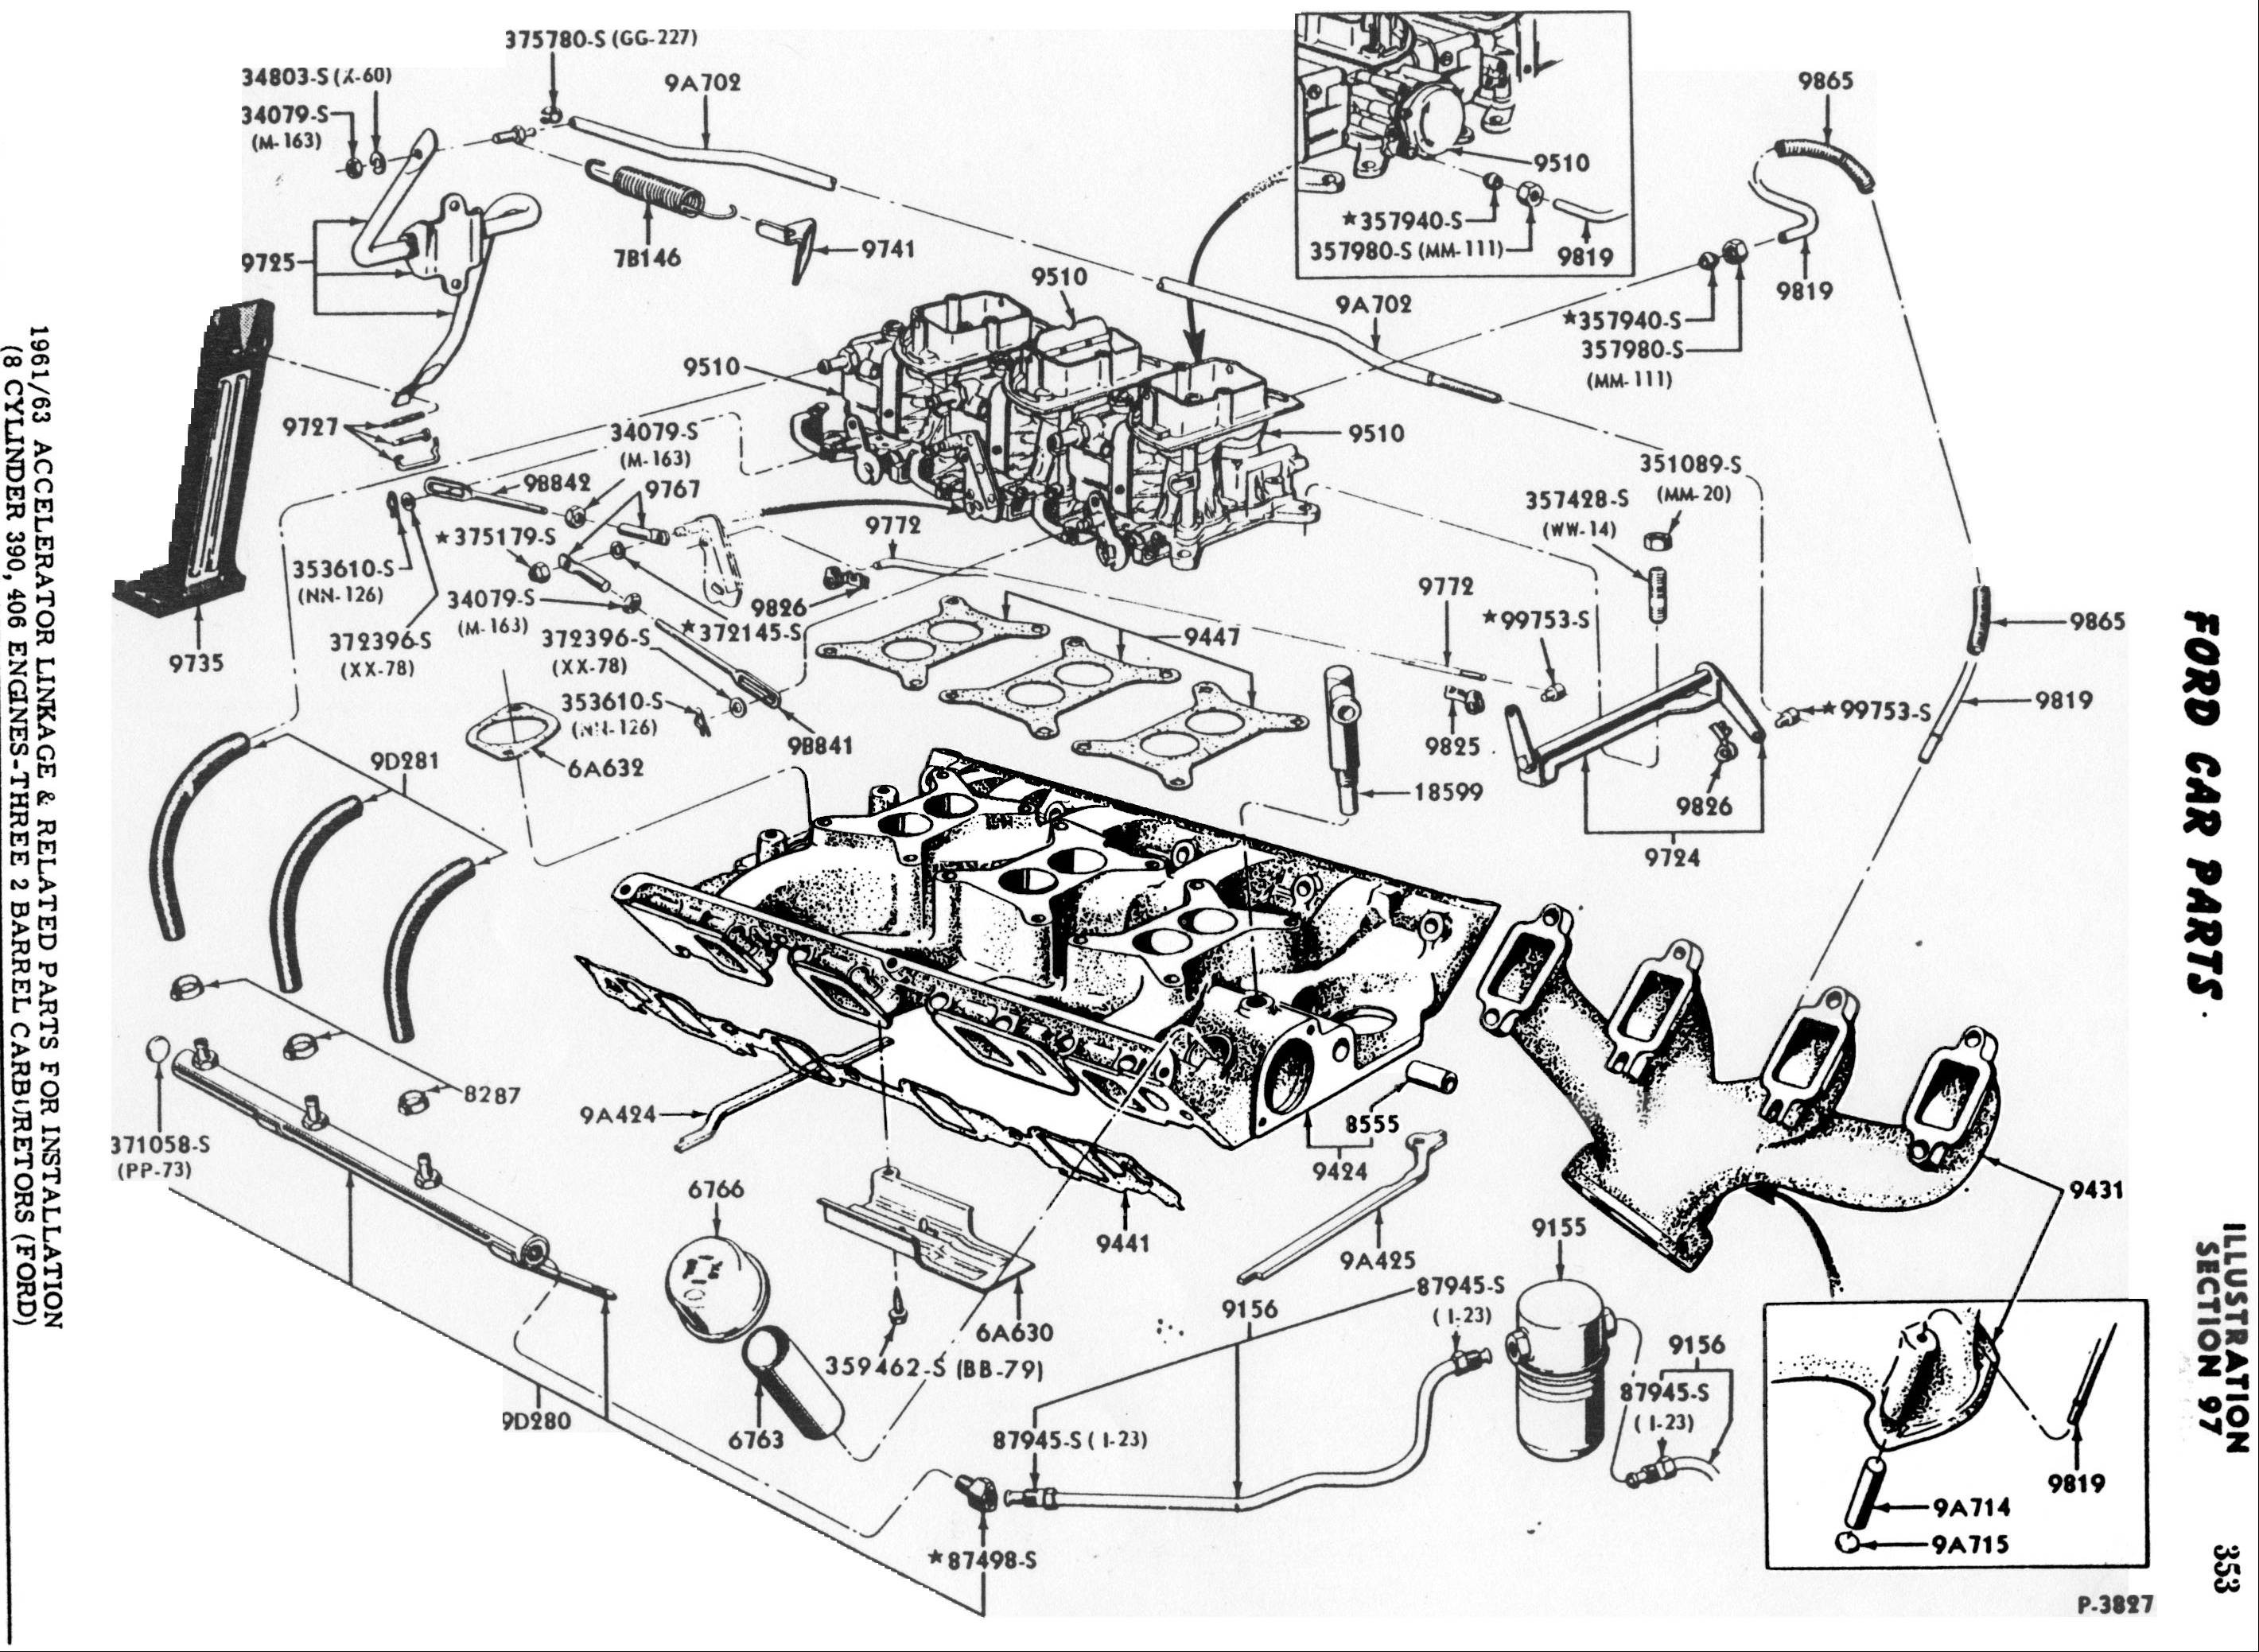 1978 Ford 460 Engine Diagram • Wiring Diagram For Free